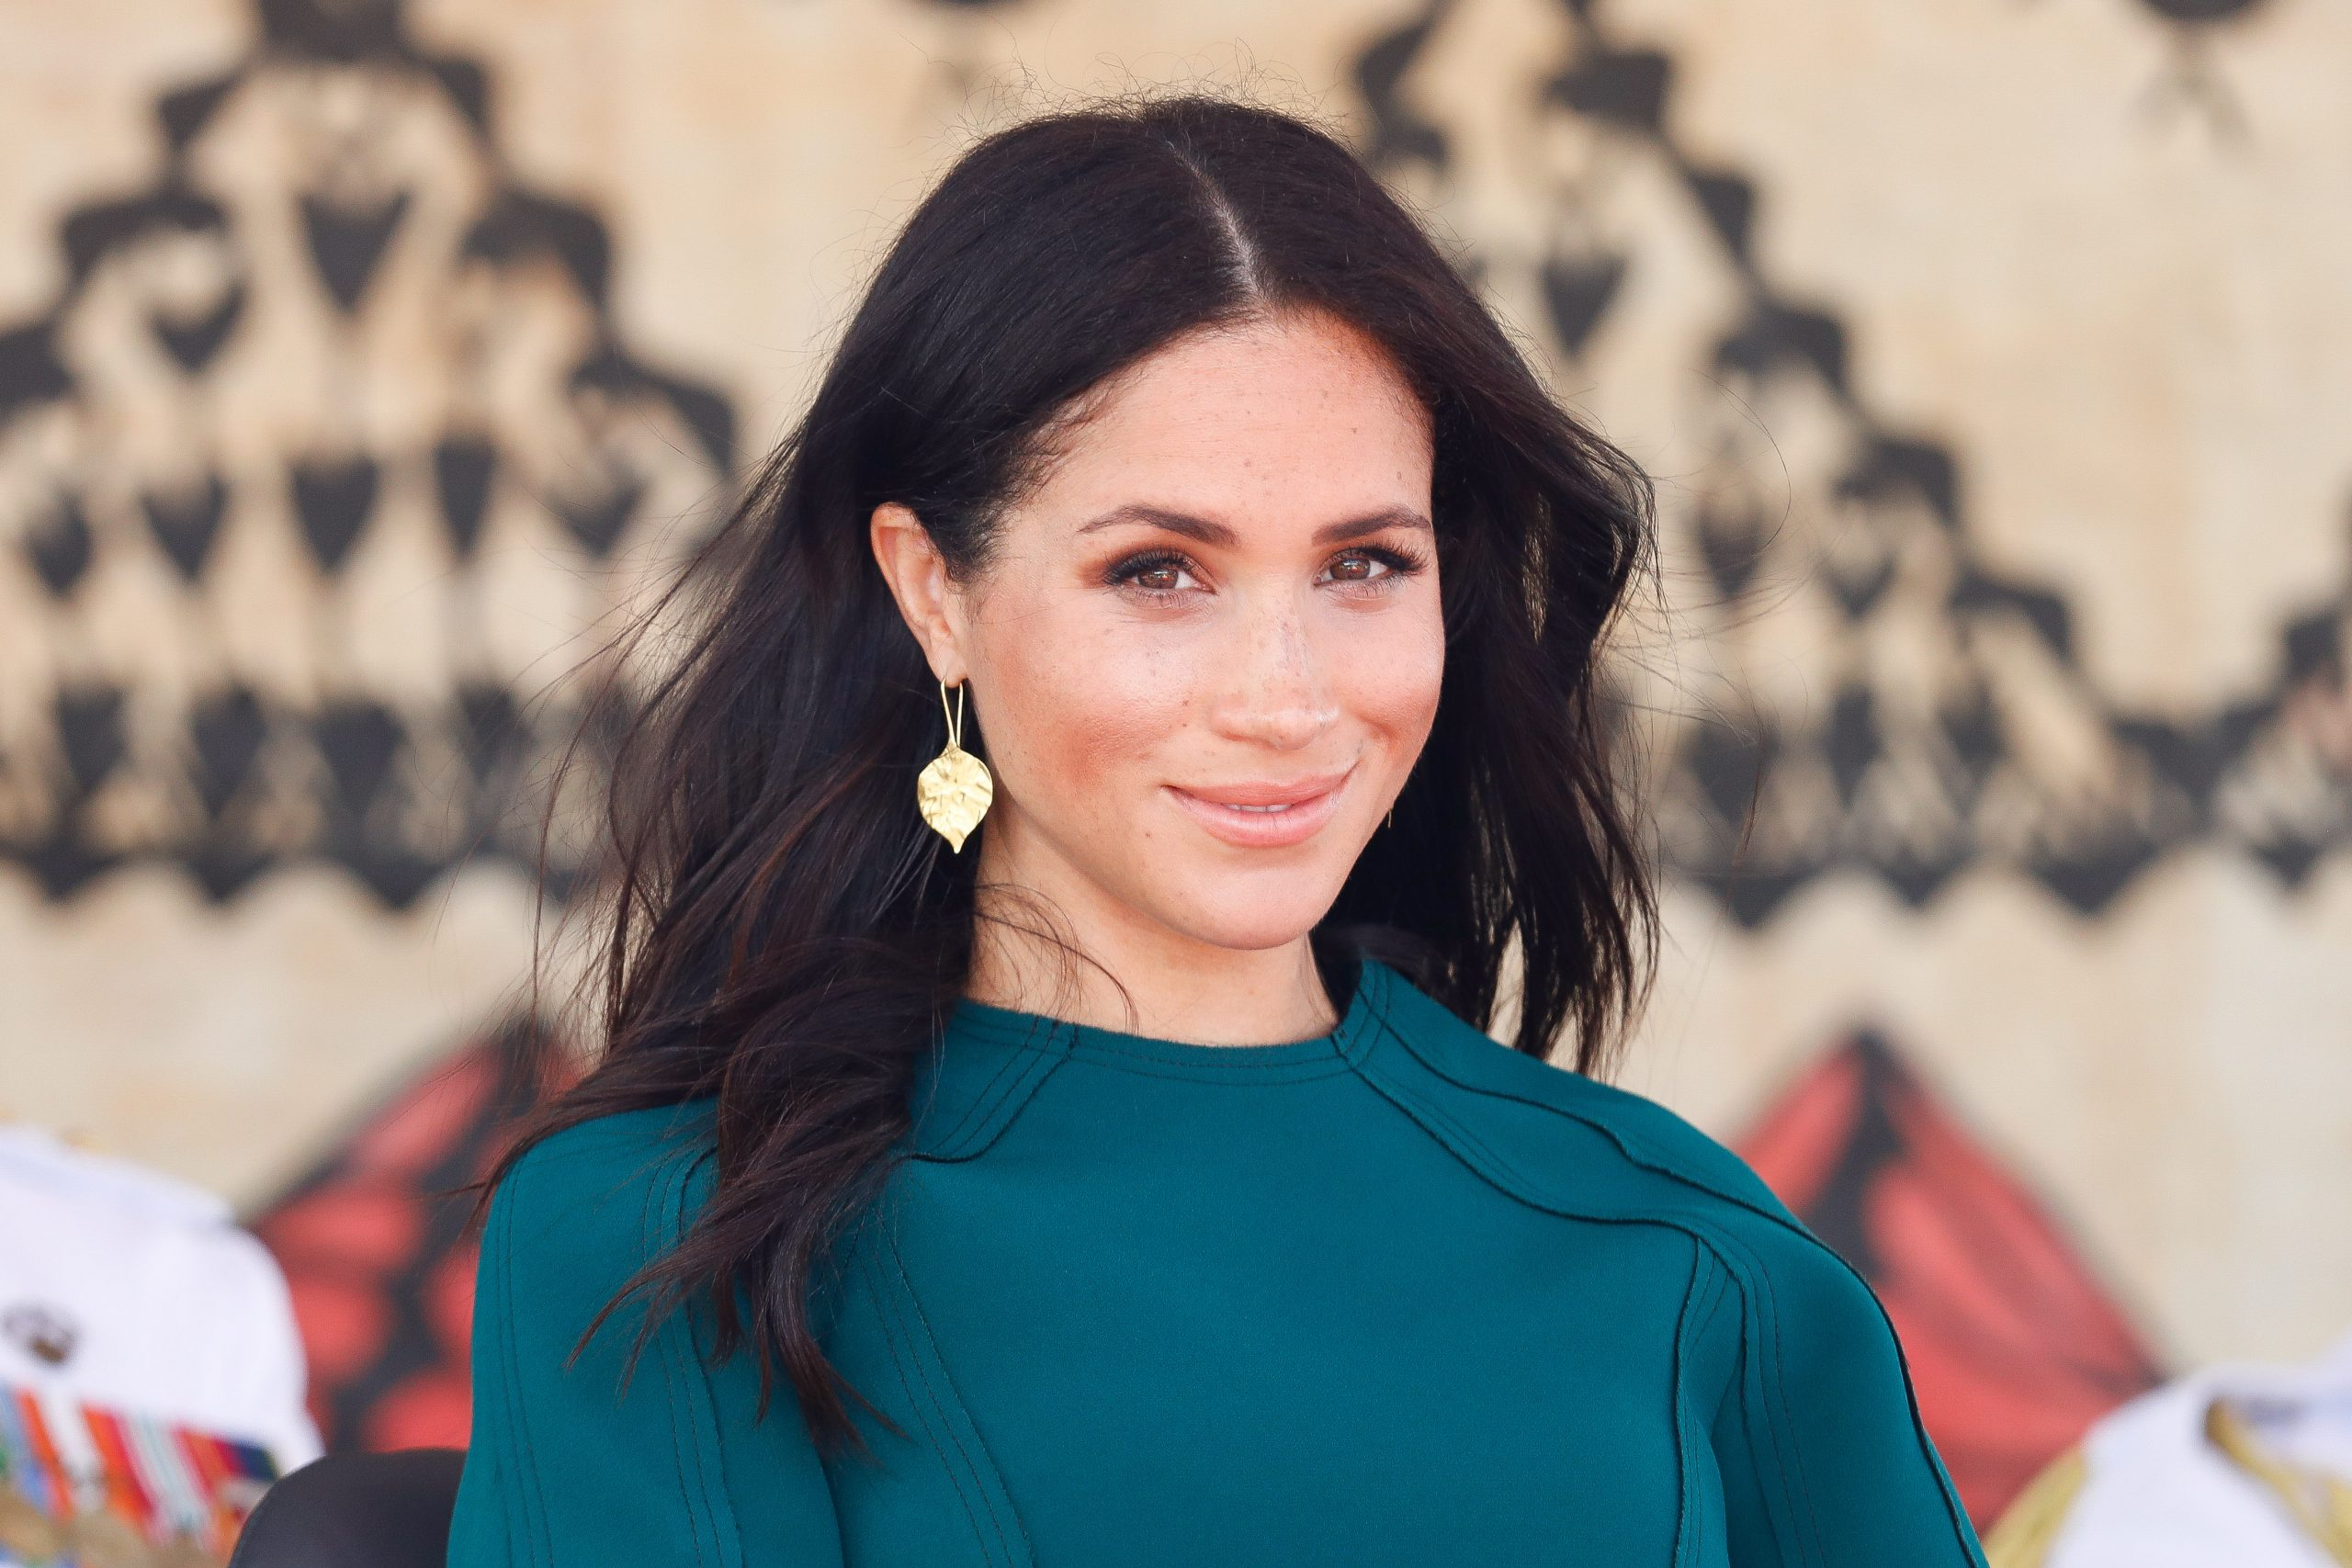 Meghan Markle Ranks No. 1 in Beauty News Coverage, Beating Out Kate Middleton and Kim Kardashian